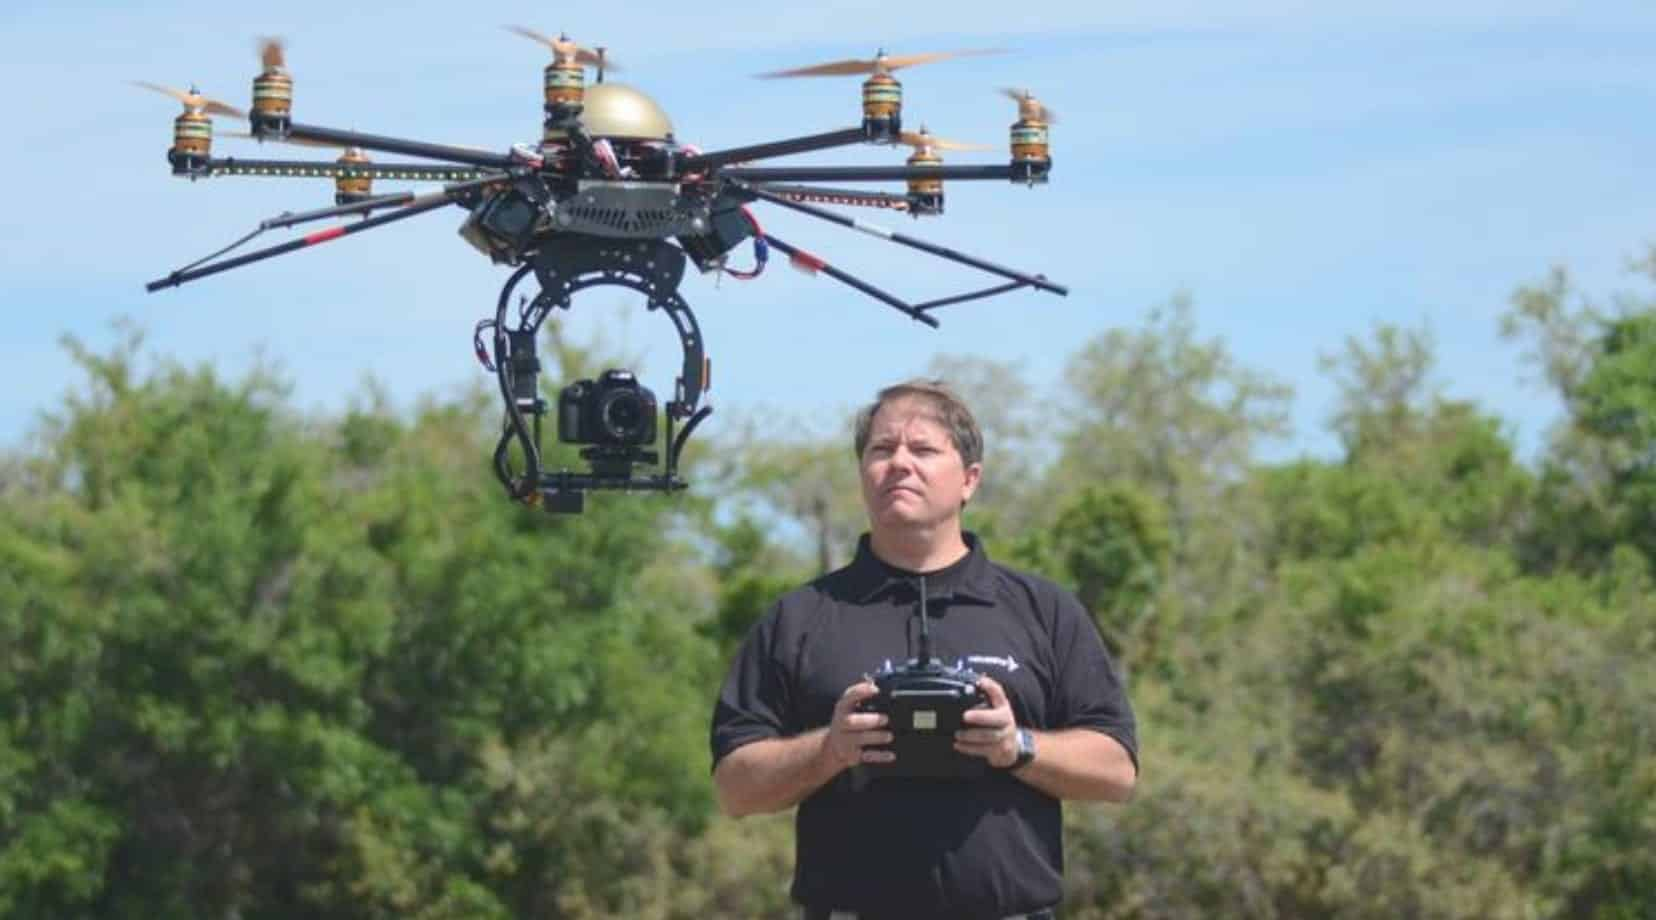 Orlando-based drone company Hoverfly receives $10M investment